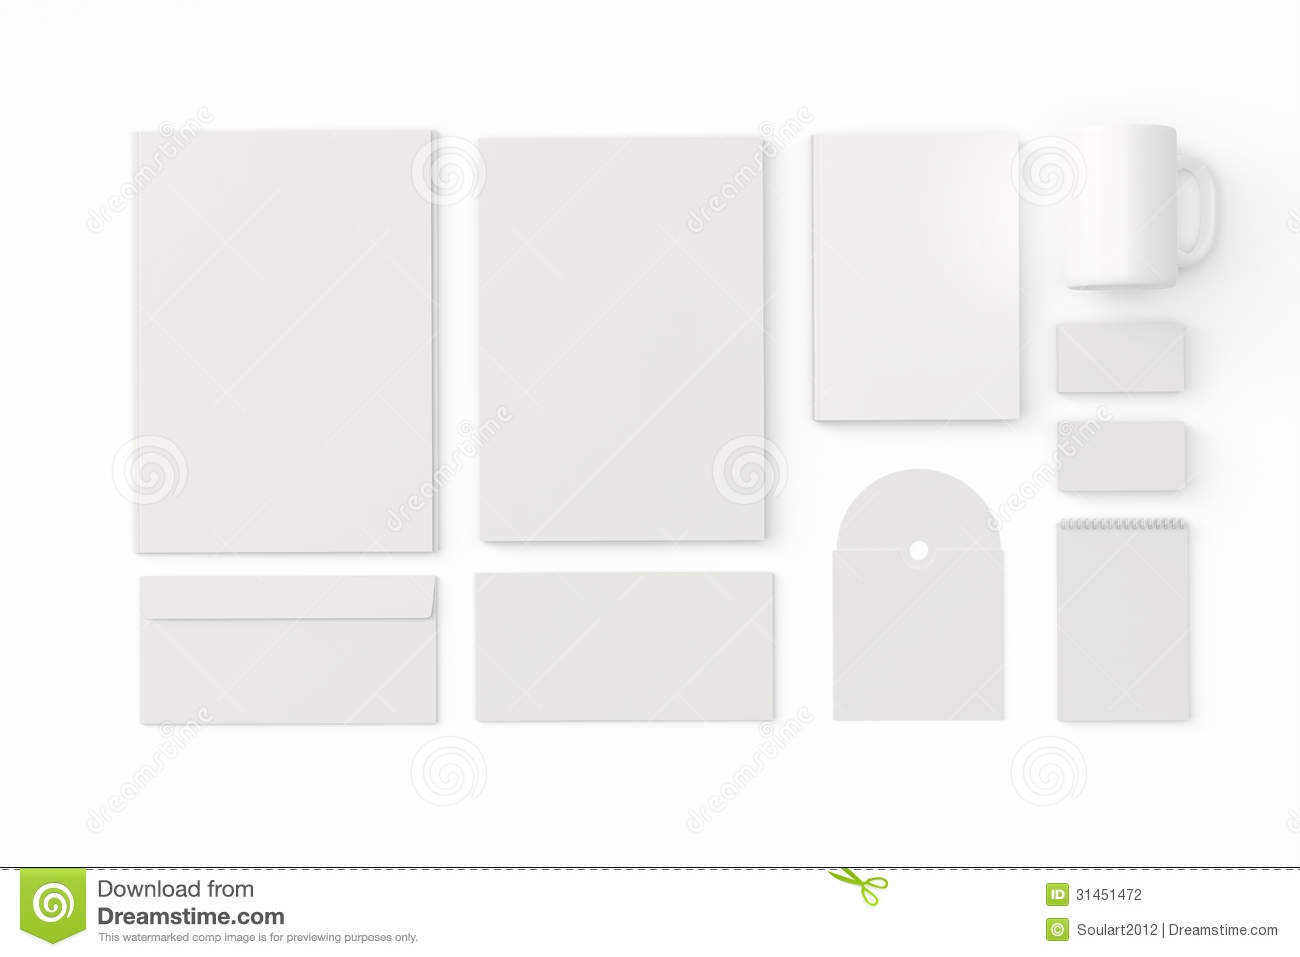 corporate identity templates stock illustration image 31451472. Black Bedroom Furniture Sets. Home Design Ideas